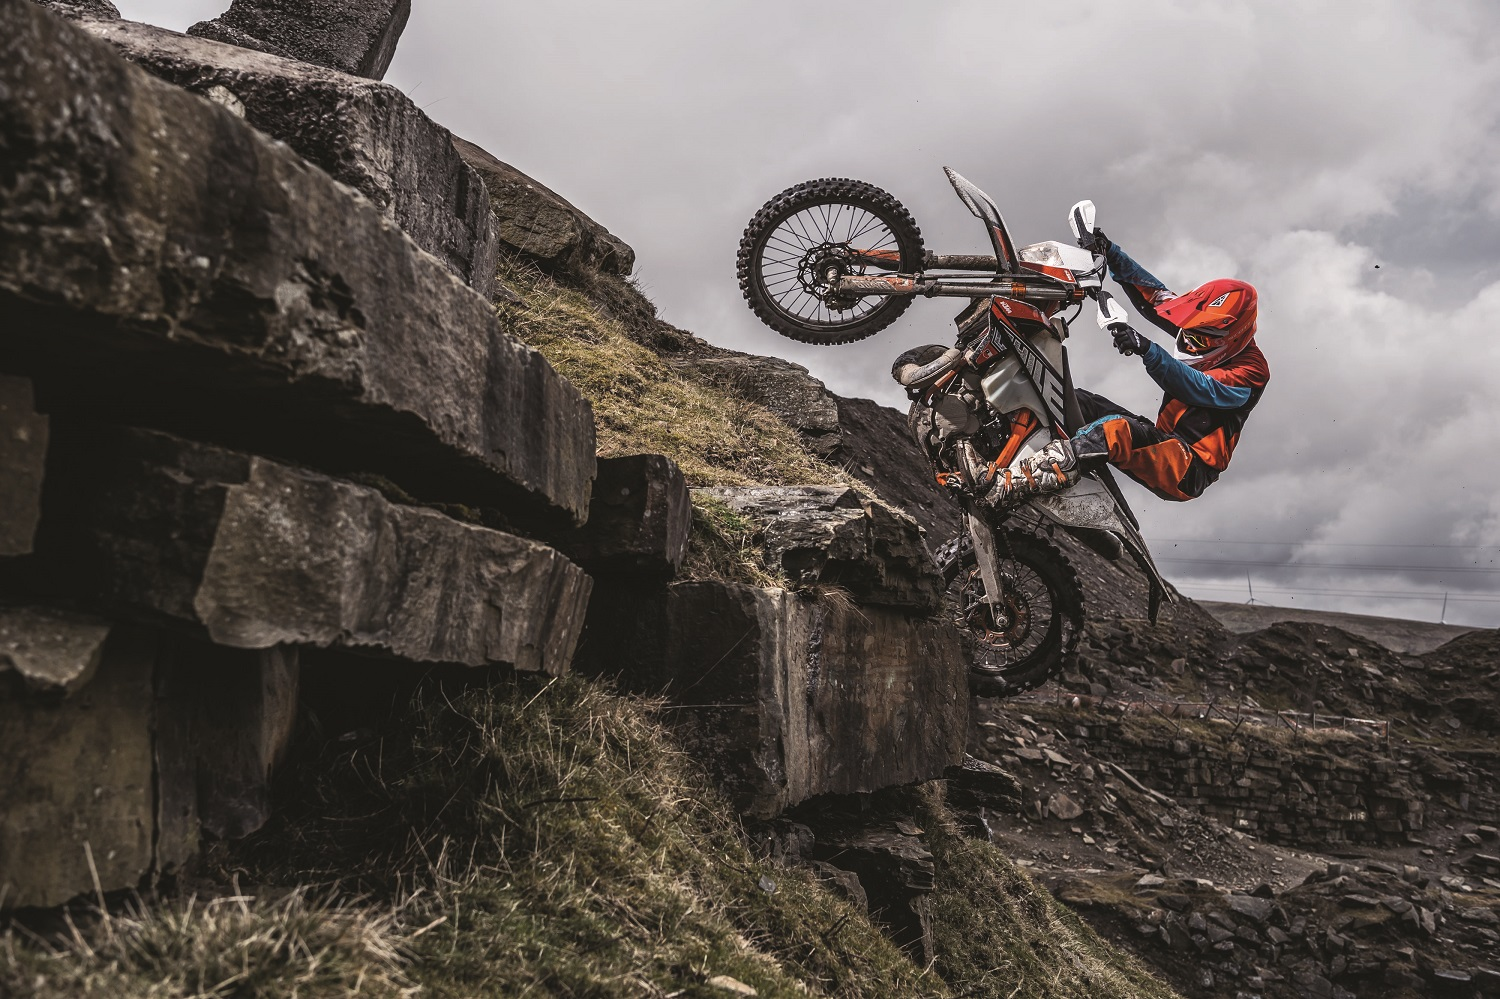 01_Action_KTM 300 EXC TPI SIX DAYS MY2019